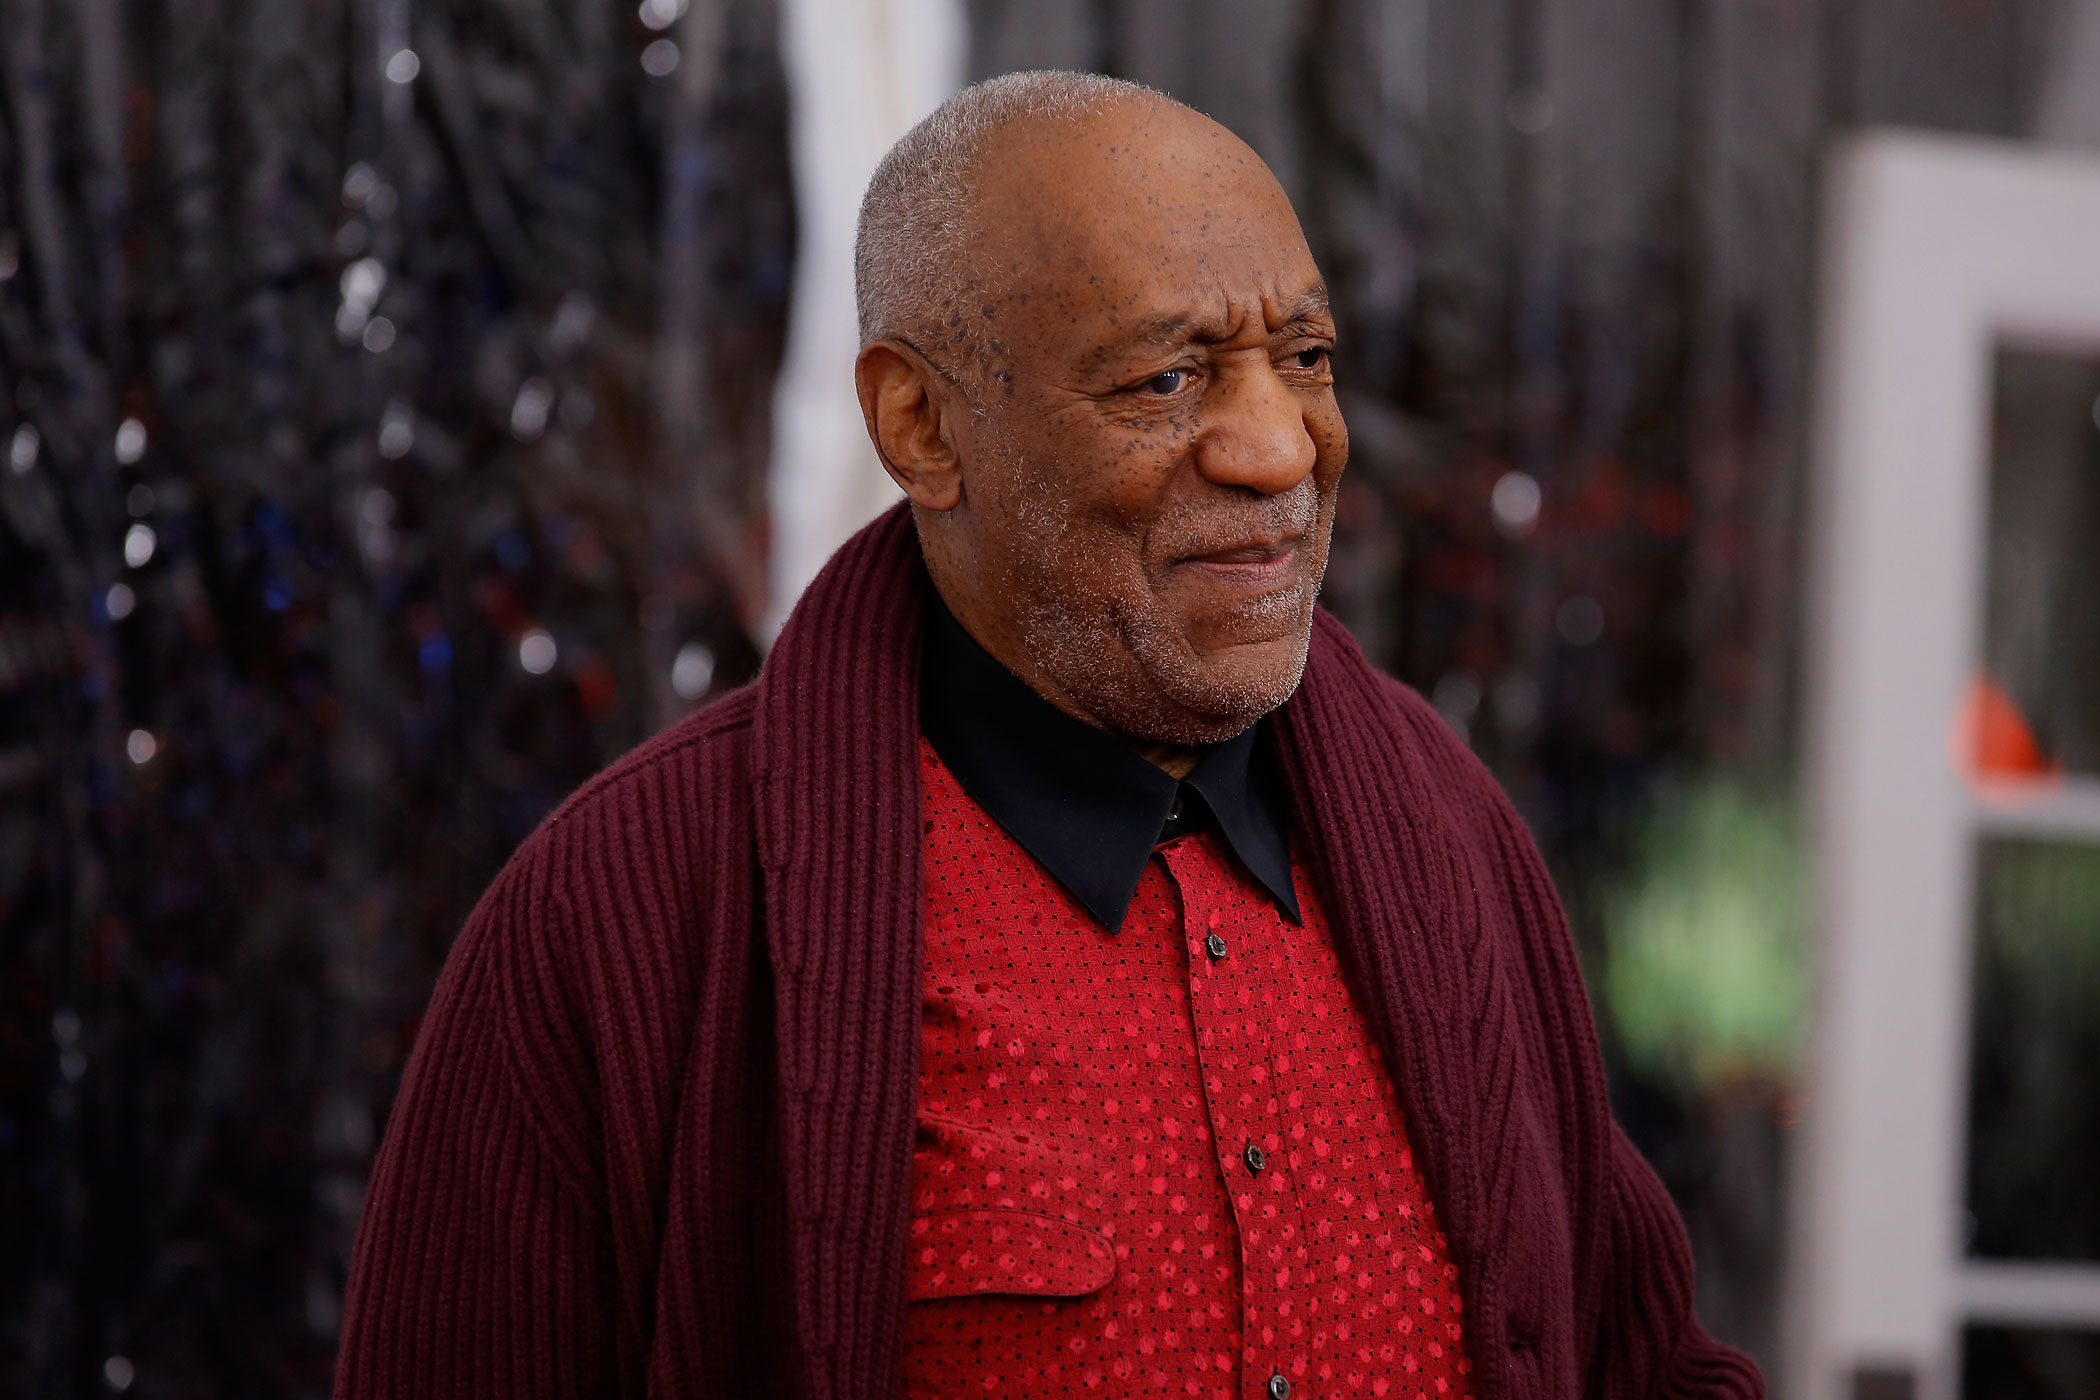 Bill Cosby attends the 7th annual Stand Up for Heroes event at Madison Square Garden in New York City on Nov. 6, 2013